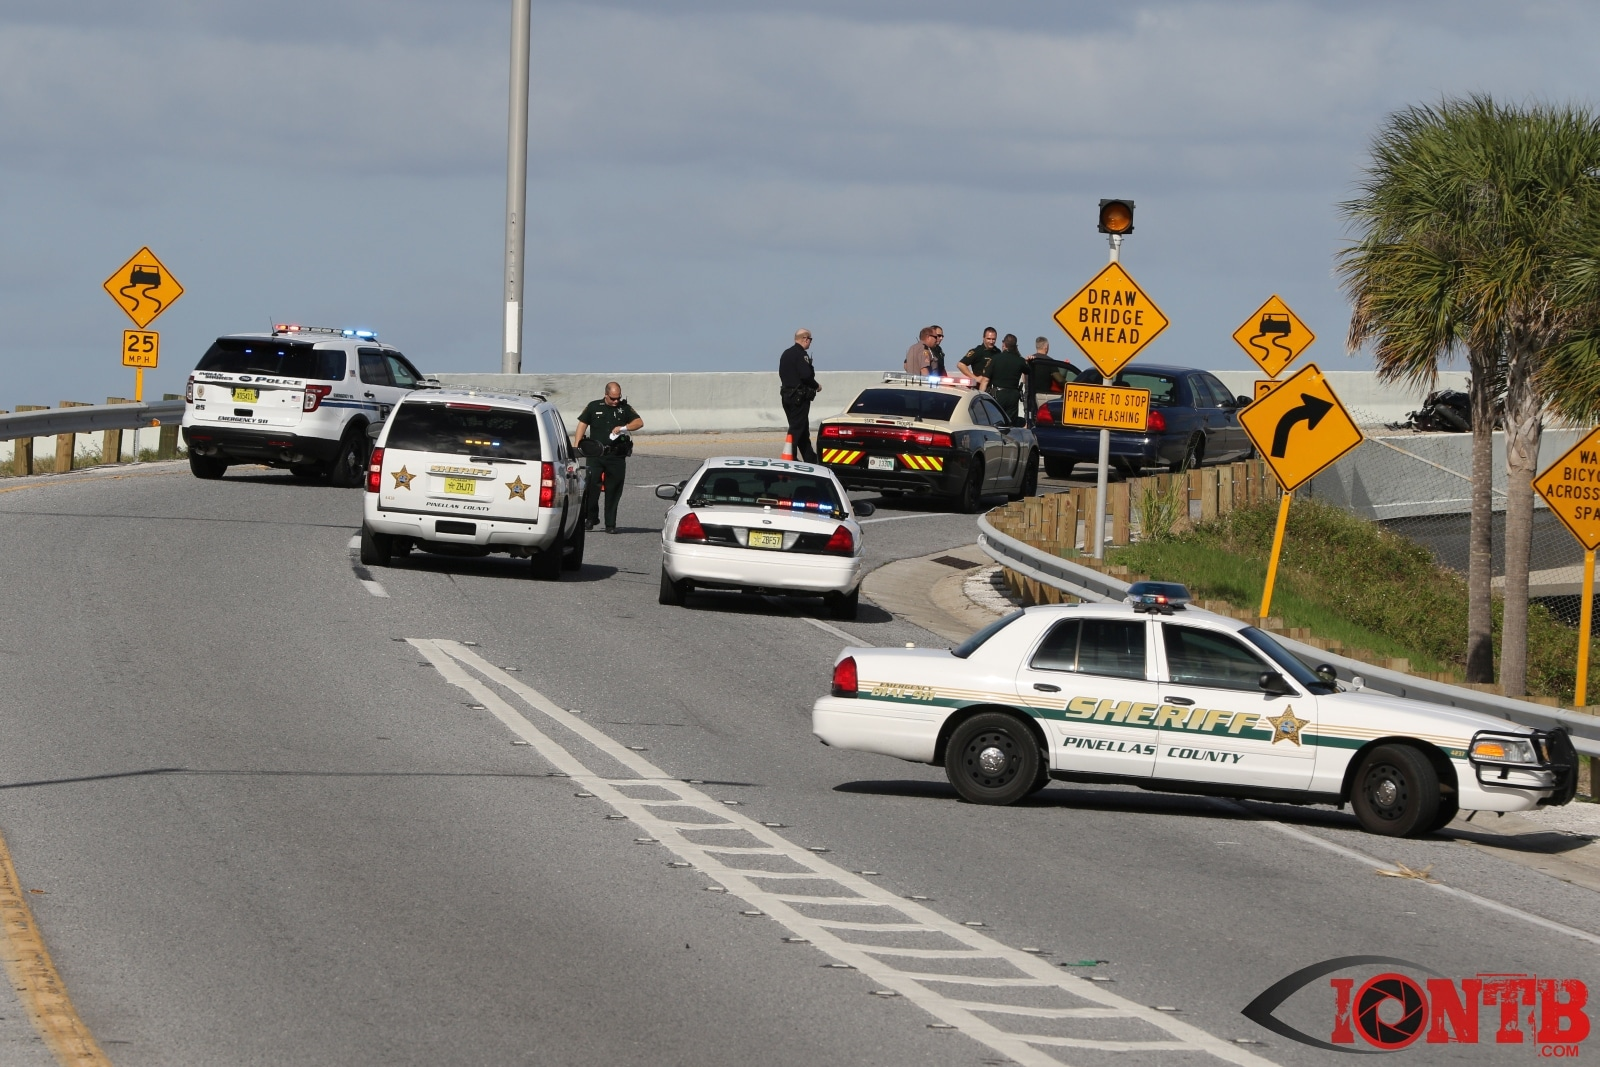 Motorcyclist Dead After Getting Ejected Off Park Boulevard Bridge